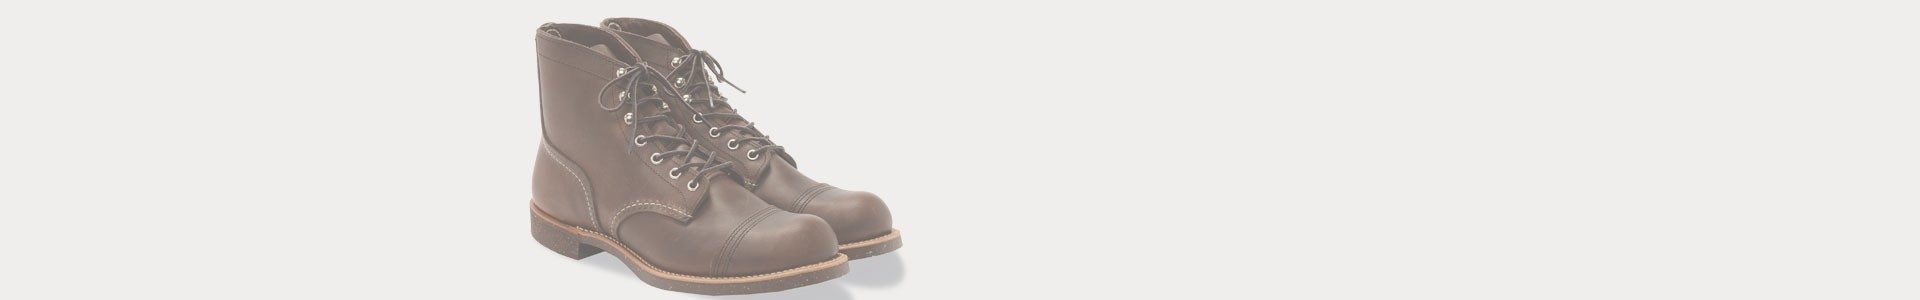 Boots for Men online | Buy Now on AnyGivenSunday.Shop